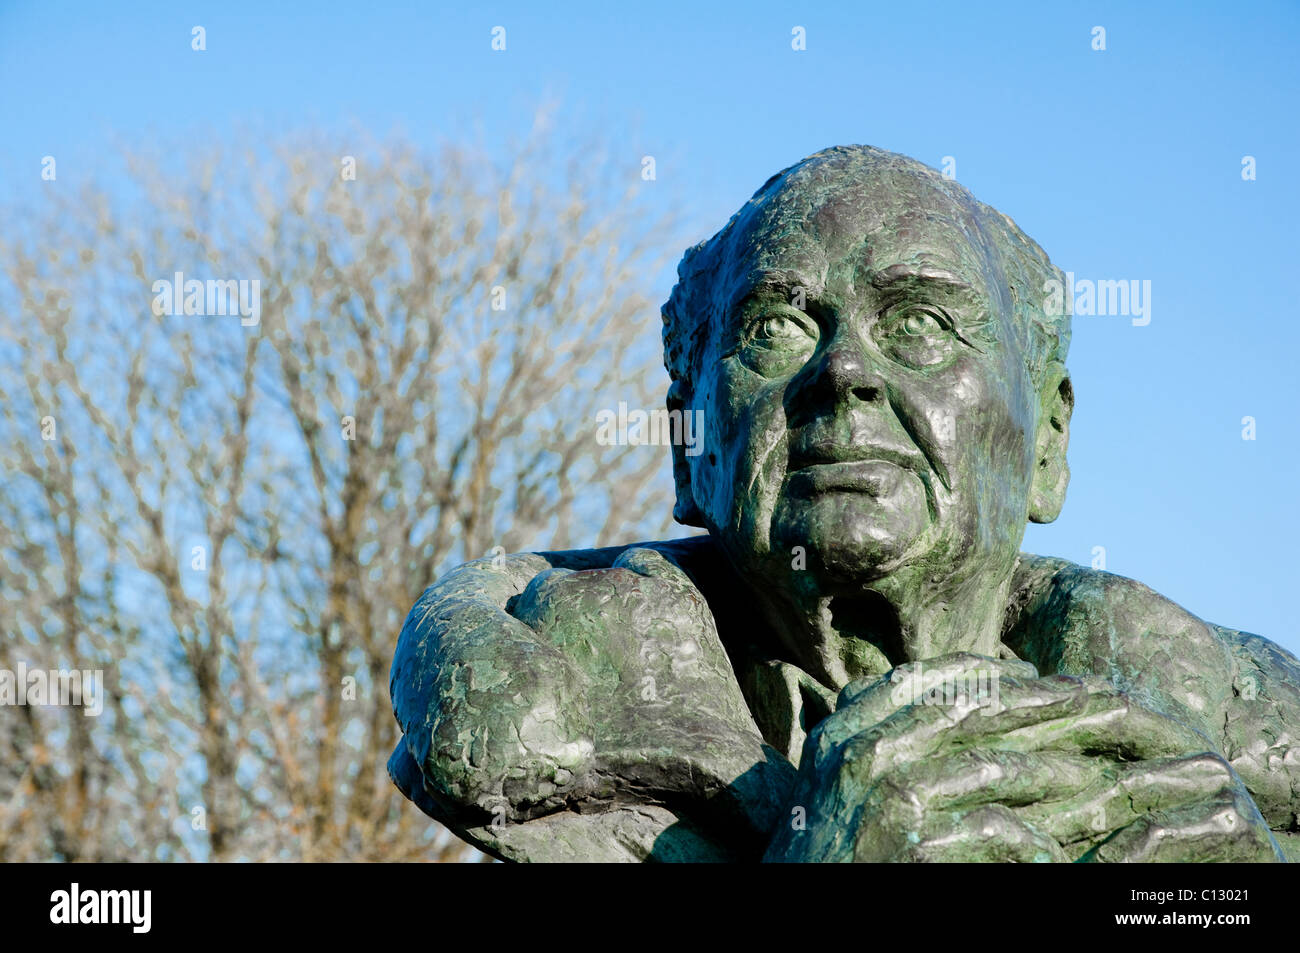 Sir Peter Scott ( bronze bust ) situated within Slimbridge Wildfowl & Wetlands Trust  - which he founded in 1946. Stock Photo